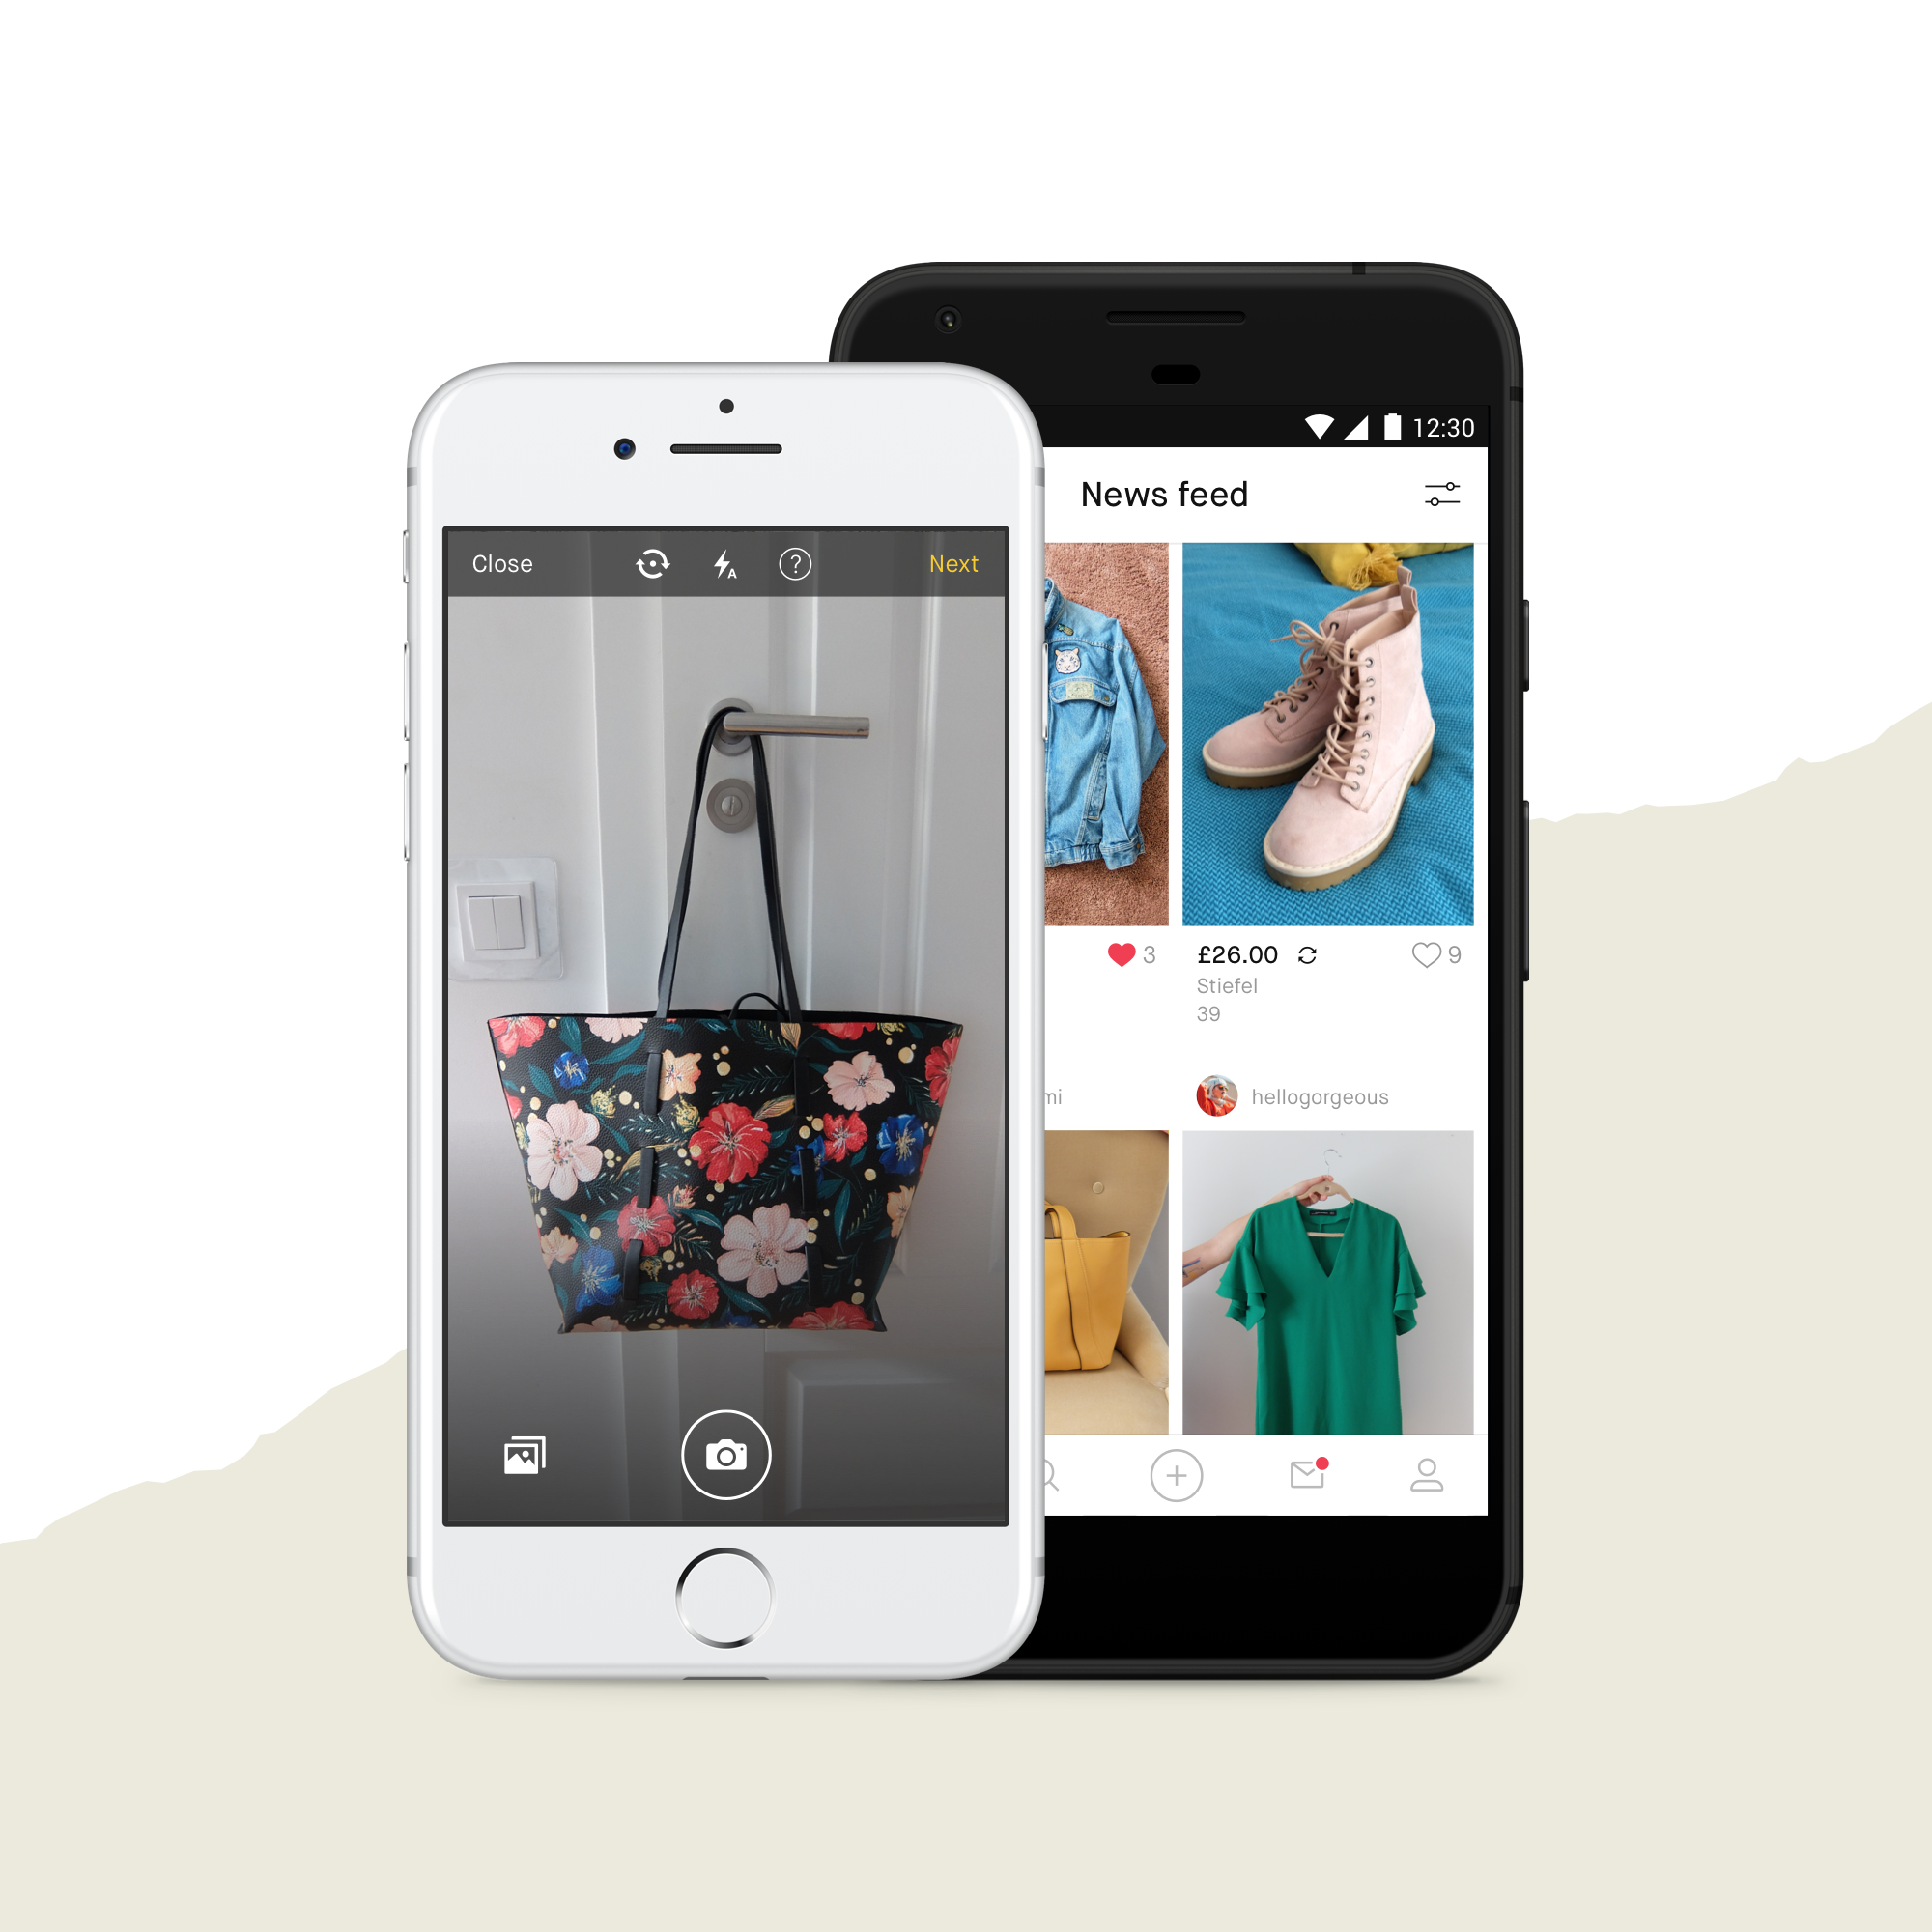 Vinted The Second Hand Clothes Marketplace Raises 141m At A 1b Valuation Techcrunch